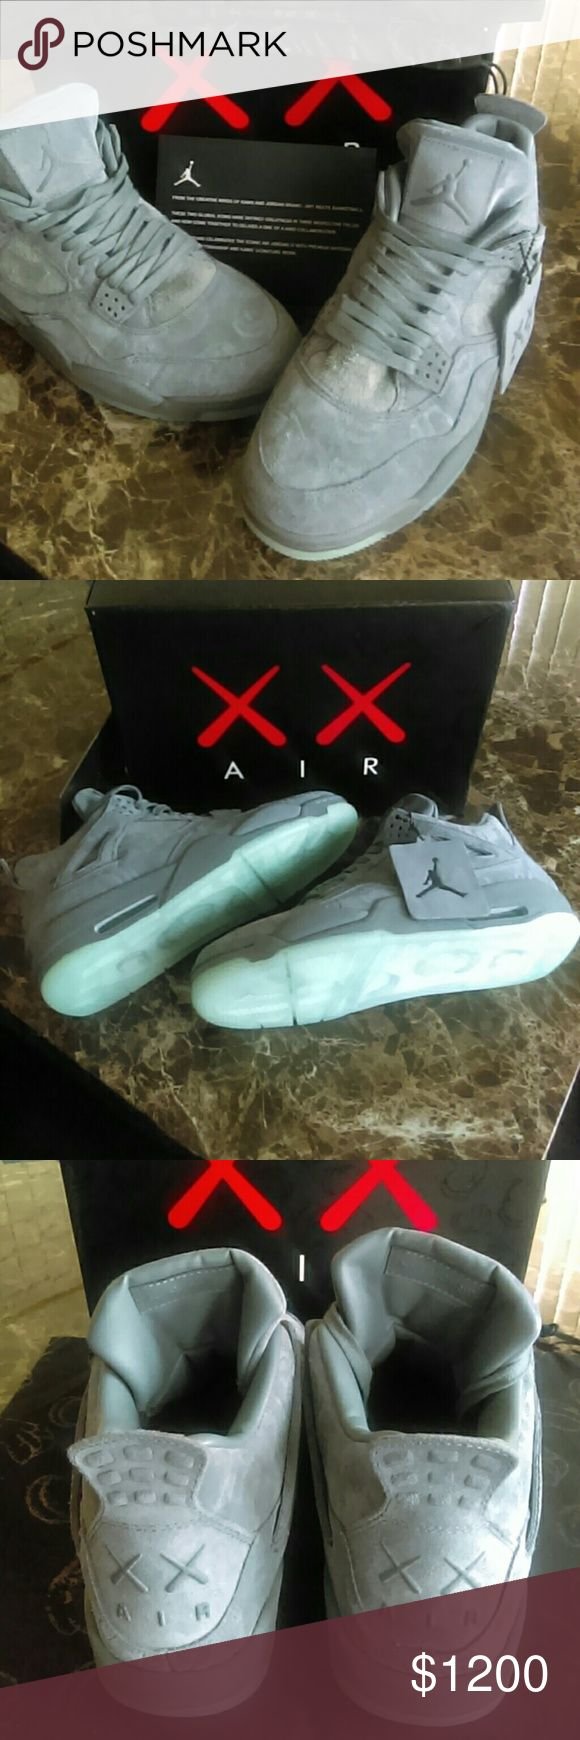 Brand New Authentic KAWS Retro Jordan 4, Cool Gray, Bottom Sole glows in the dark. Brand New in Box. Make a decent offer!! Jordan Shoes Athletic Shoes